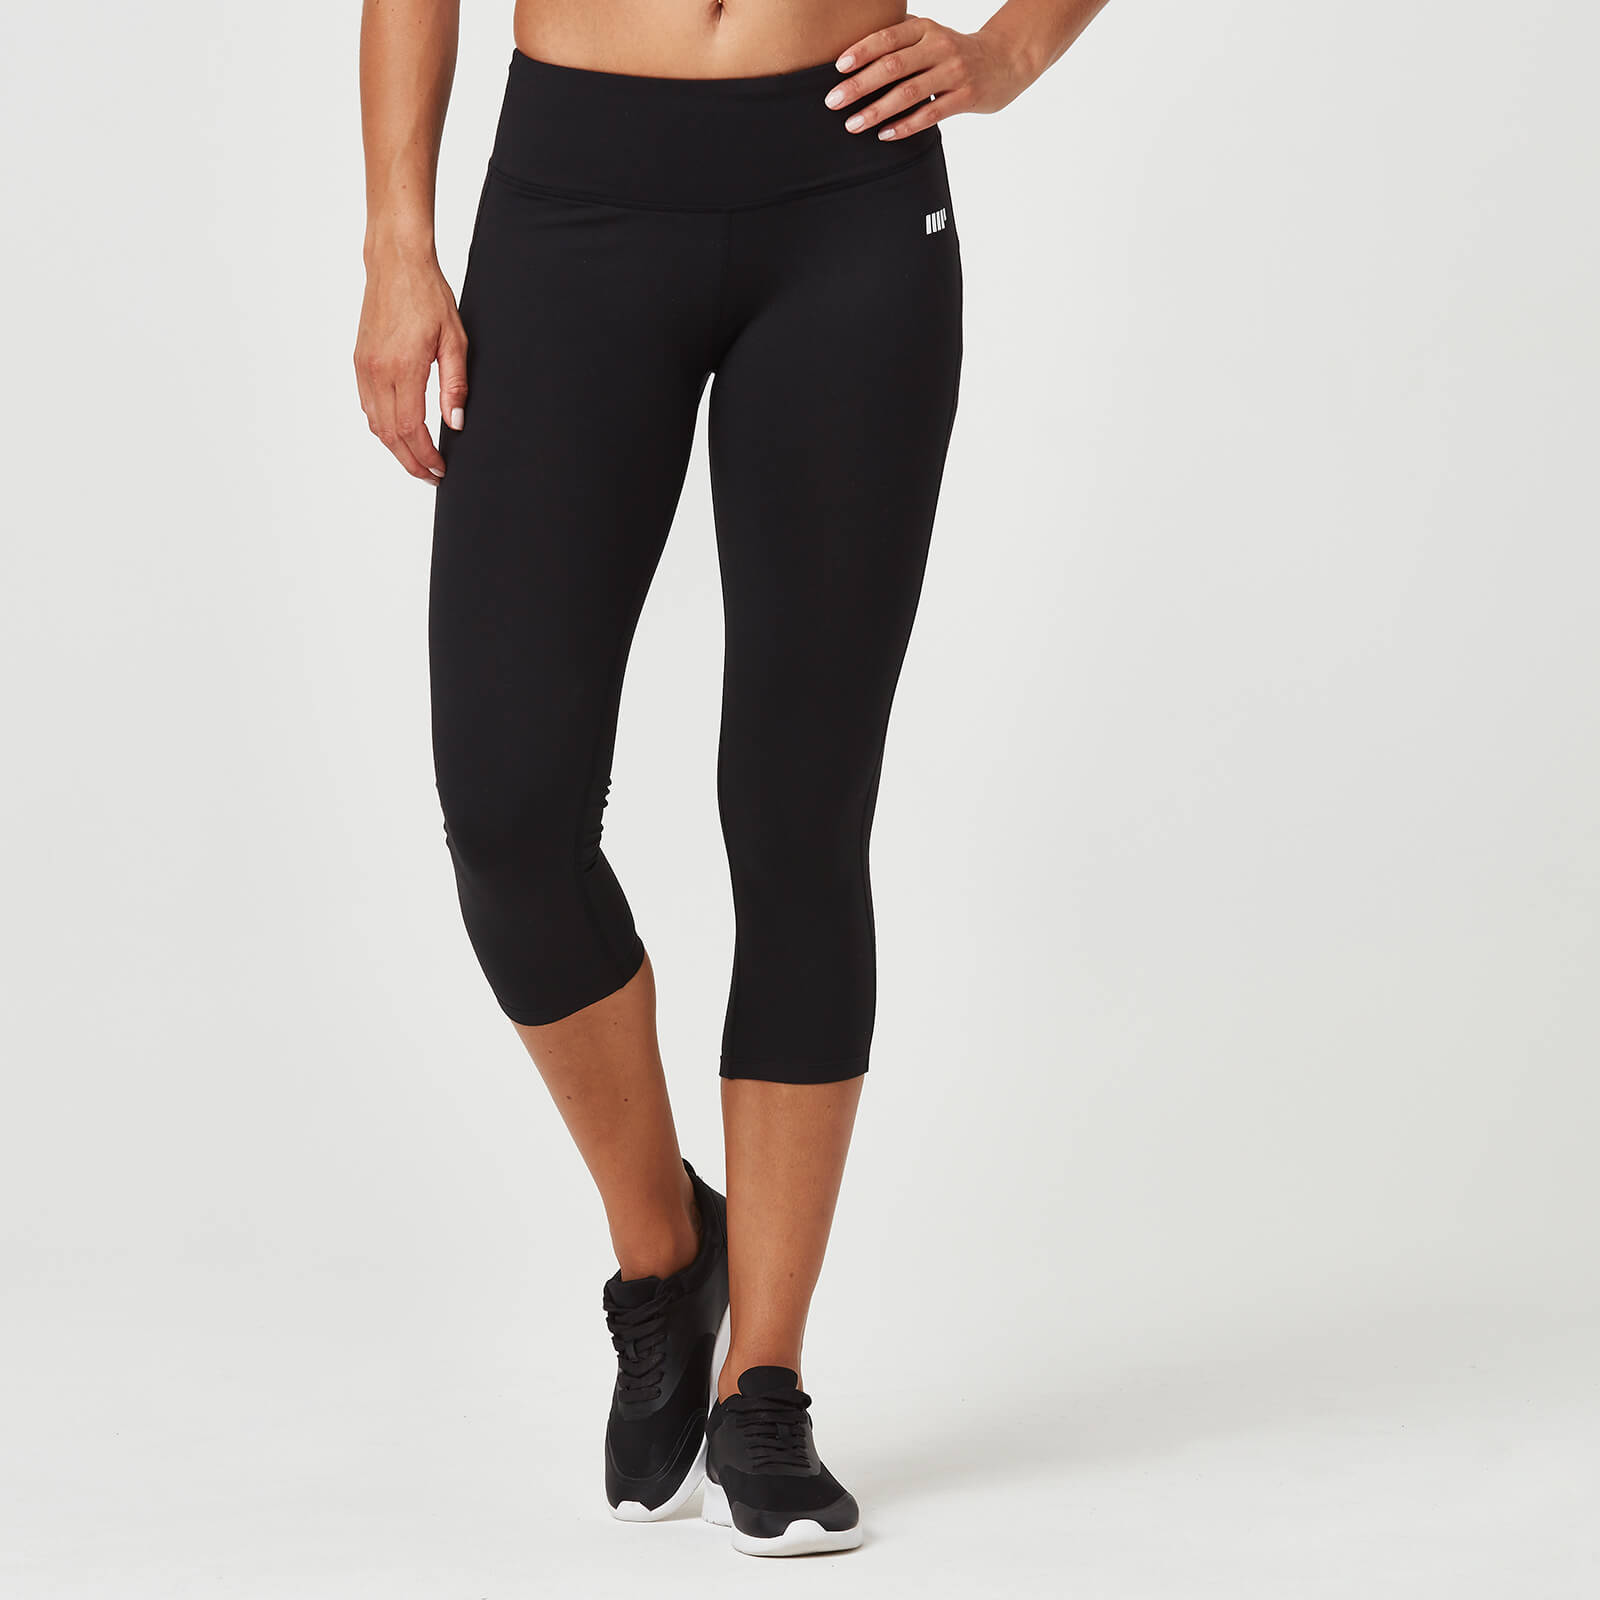 Myprotein Classic Heartbeat 7/8 Leggings - Black - XS